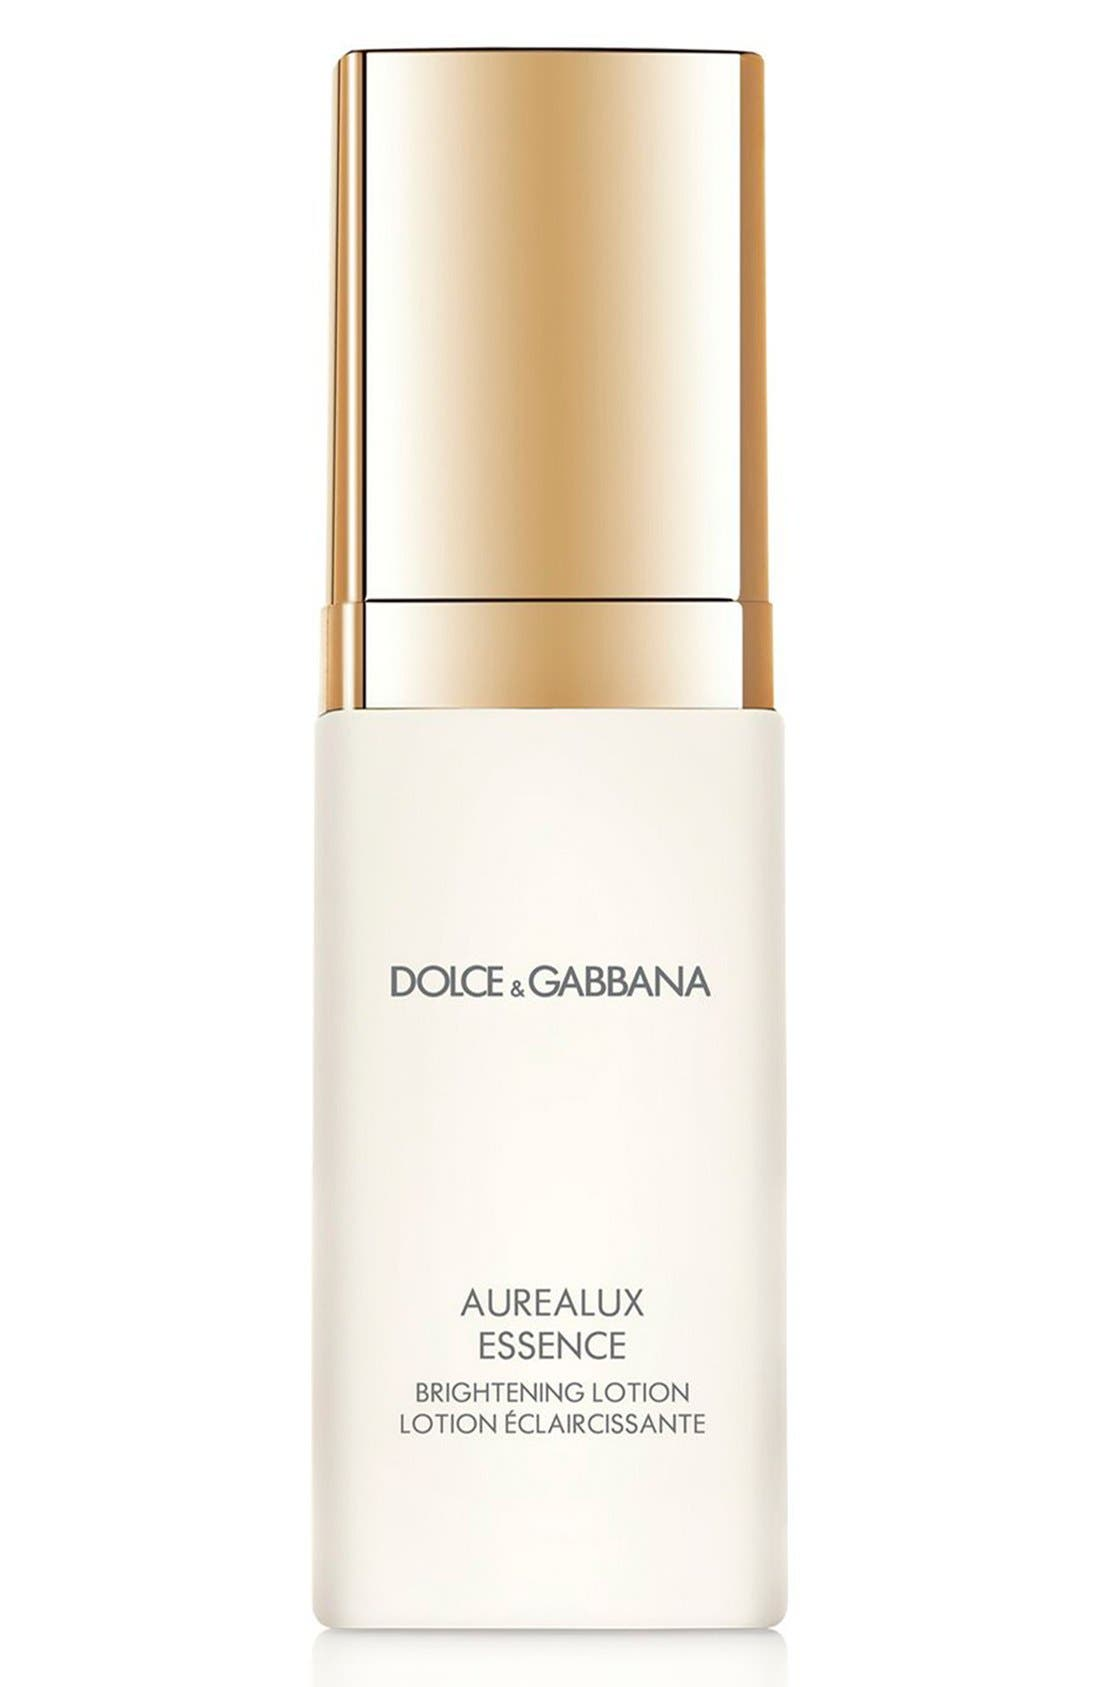 Dolce&Gabbana Beauty 'Aurealux' Essence Brightening Lotion,                             Alternate thumbnail 2, color,                             000